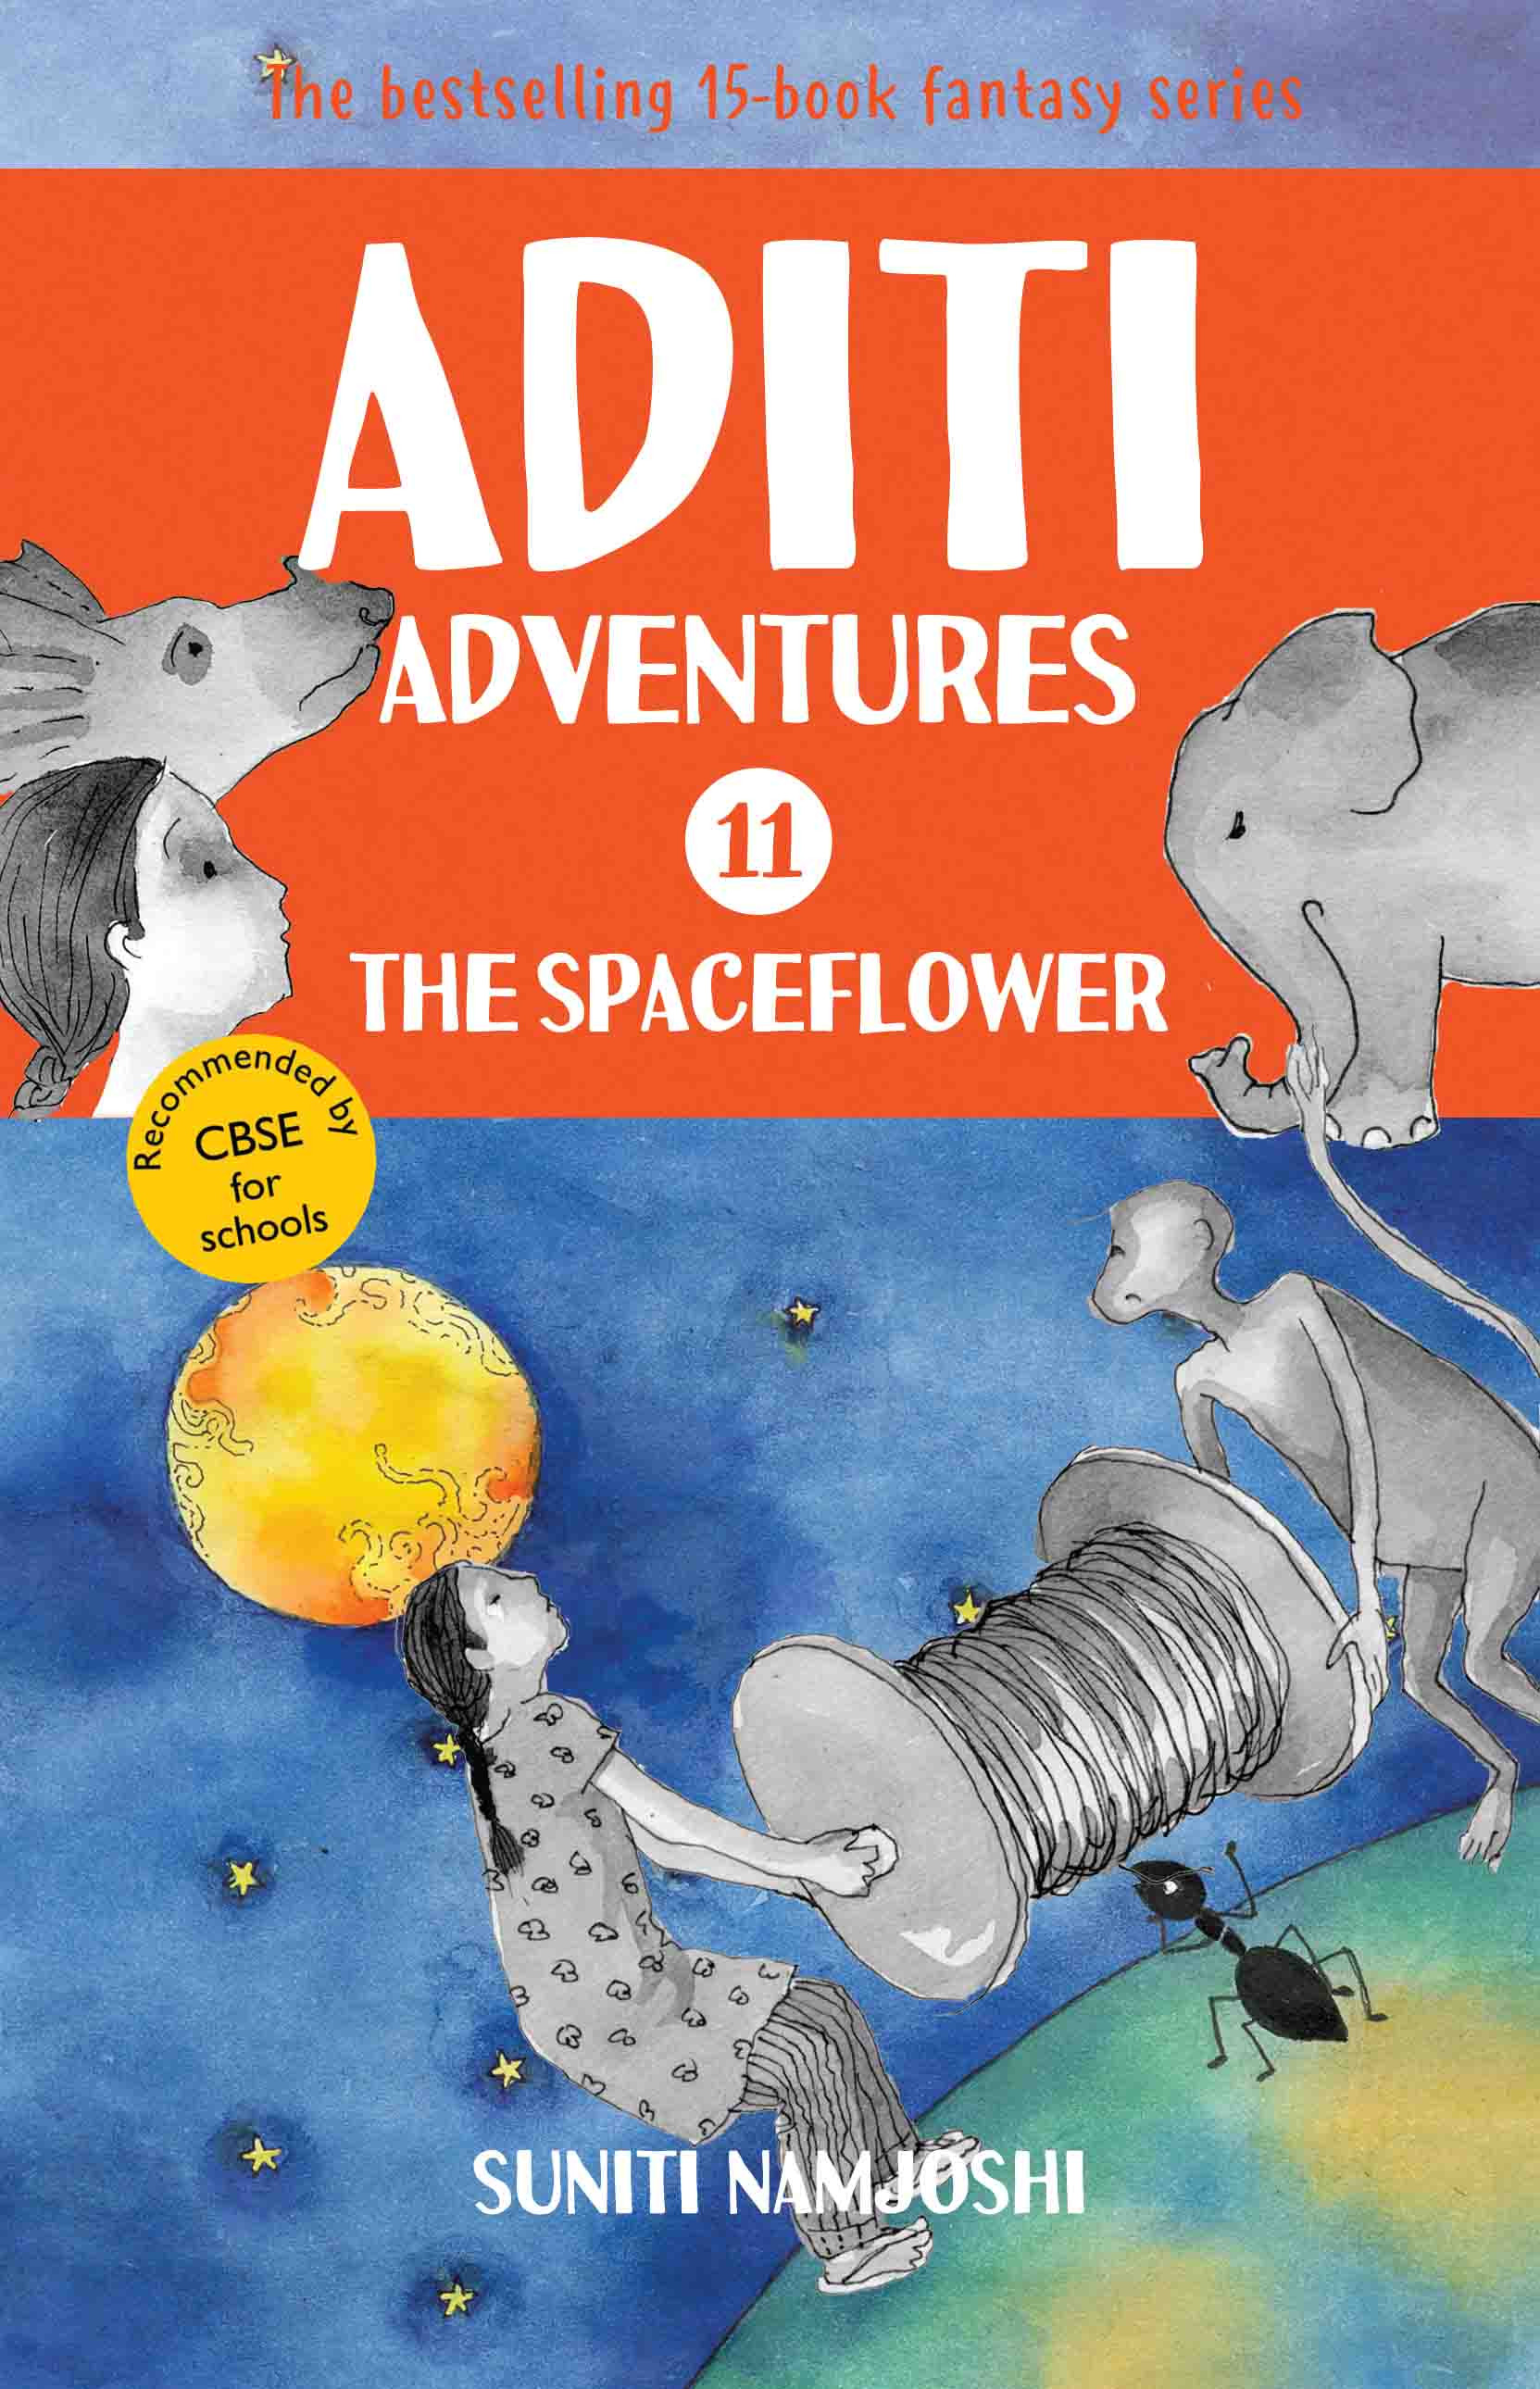 The Spaceflower (English)